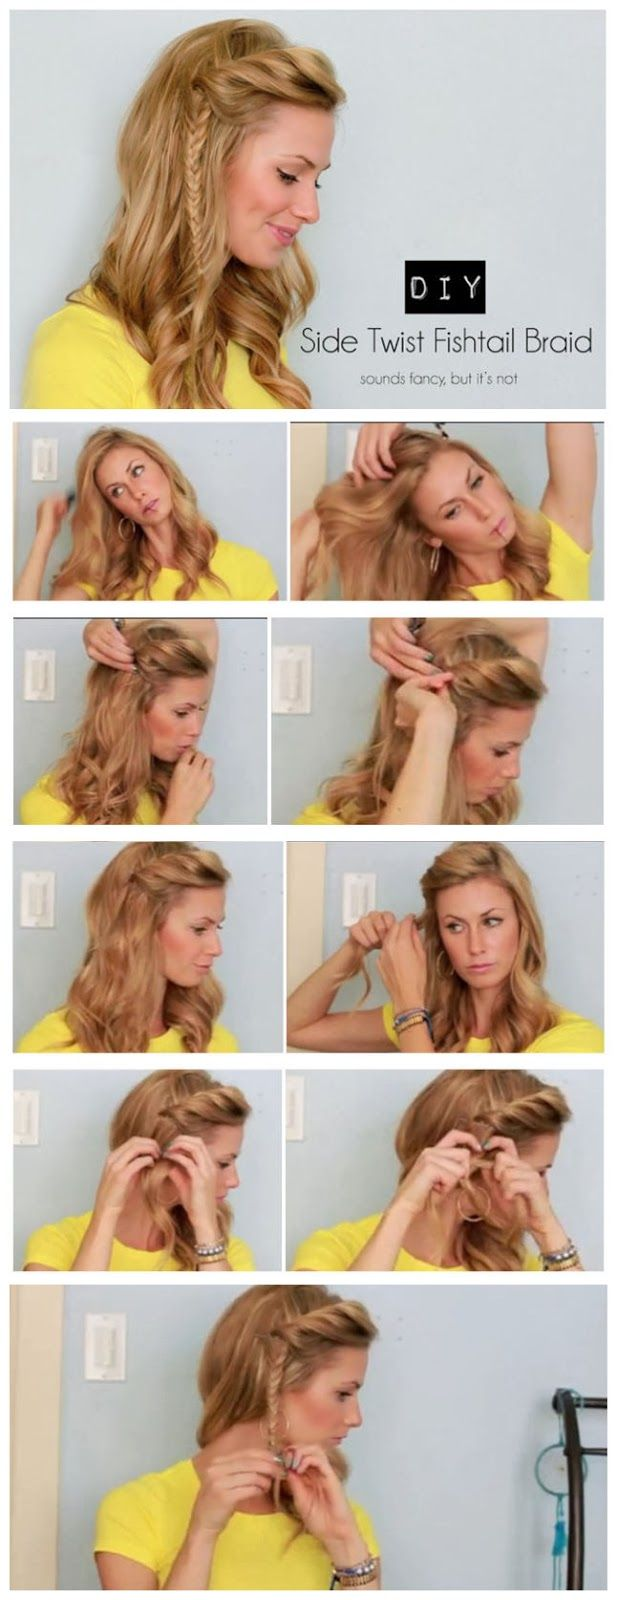 221 Best Images About Hair On Pinterest Updo Ponies And Ombre Hair